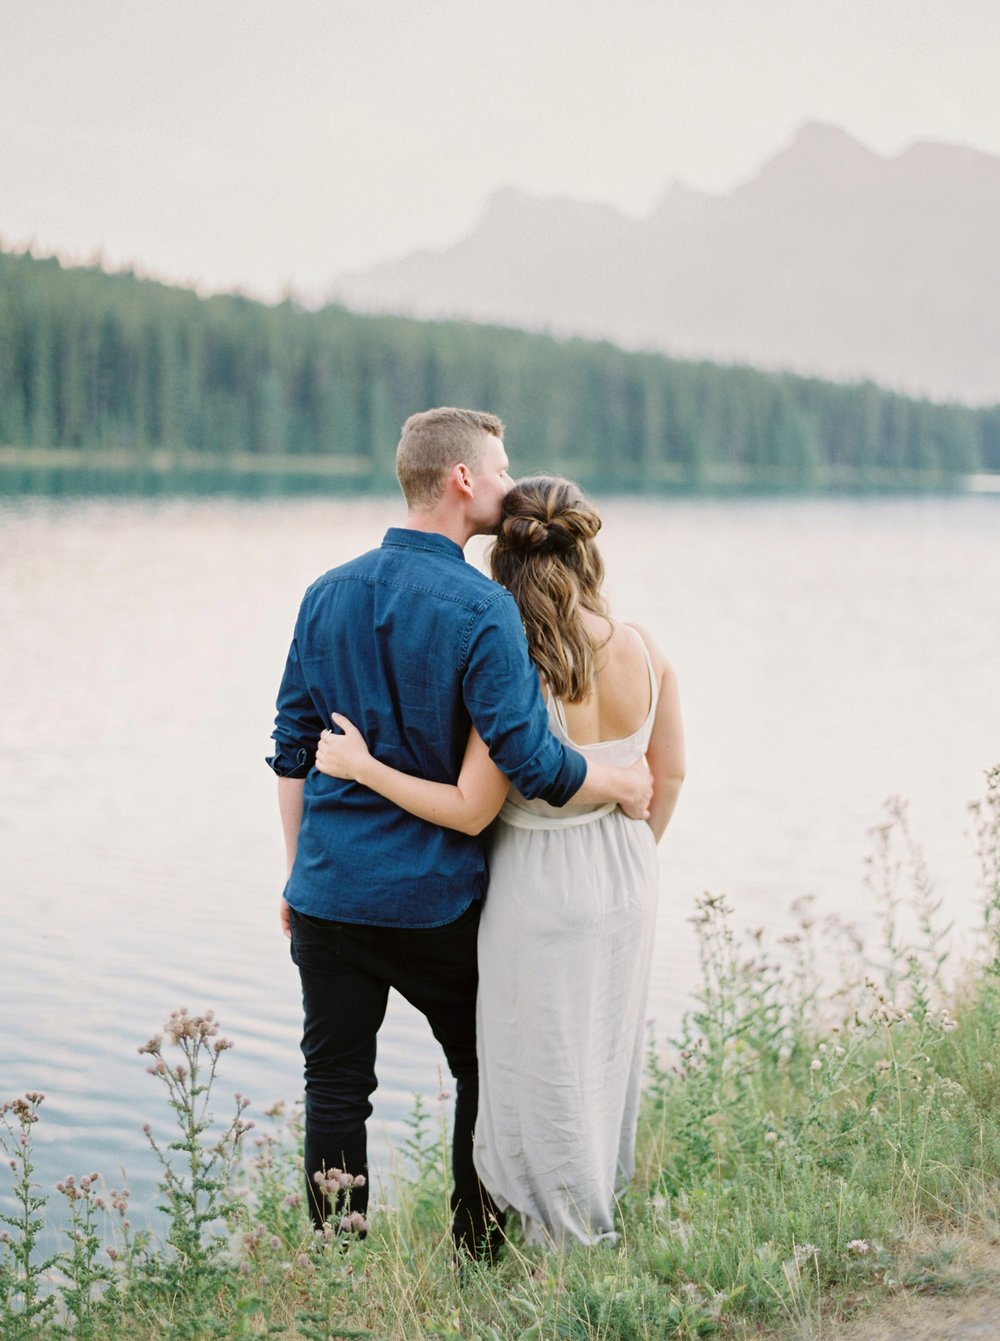 Banff Engagement Photographers | Banff Proposal Photography | Justine Milton